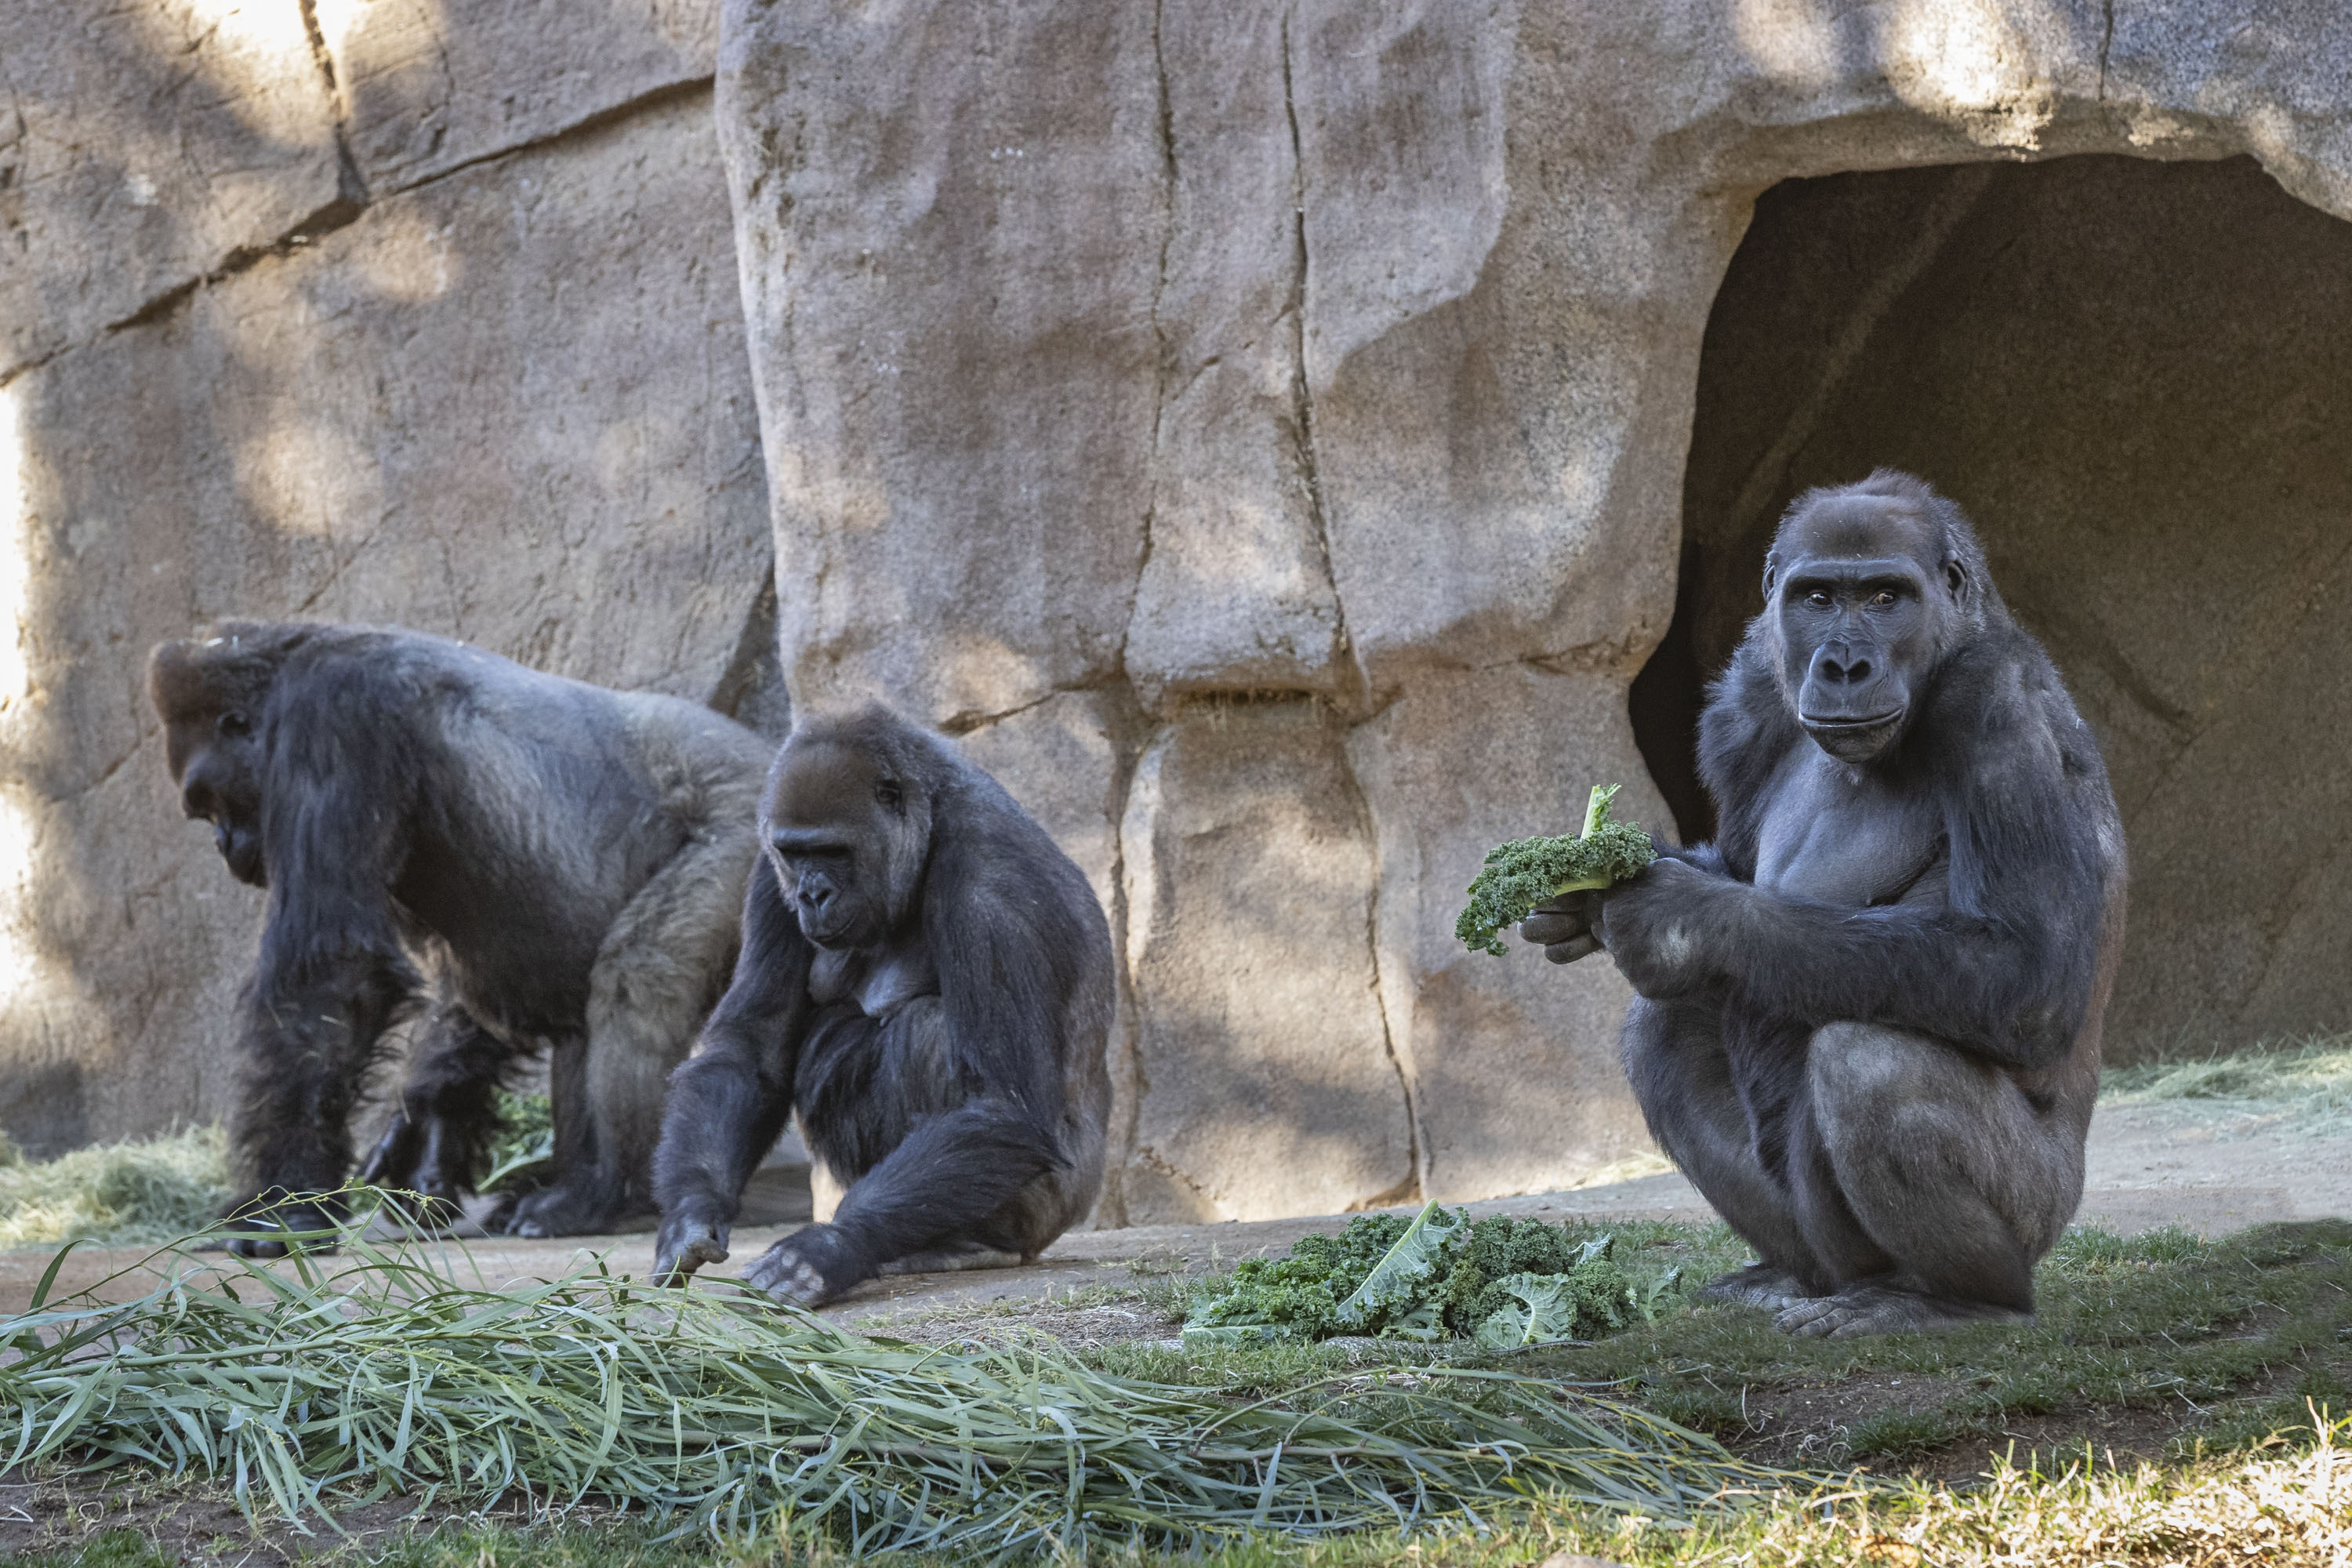 Members of the gorilla troop at the San Diego Zoo Safari Park in Escondido, Calif., are seen in their habitat on Jan. 10, 2021. Several gorillas at the zoo have tested positive for the coronavirus in what is believed to be the first known cases among such primates in the United States and possibly the world. It appears the infection came from a member of the park's wildlife care team who also tested positive for the virus but has been asymptomatic and wore a mask at all times around the gorillas.